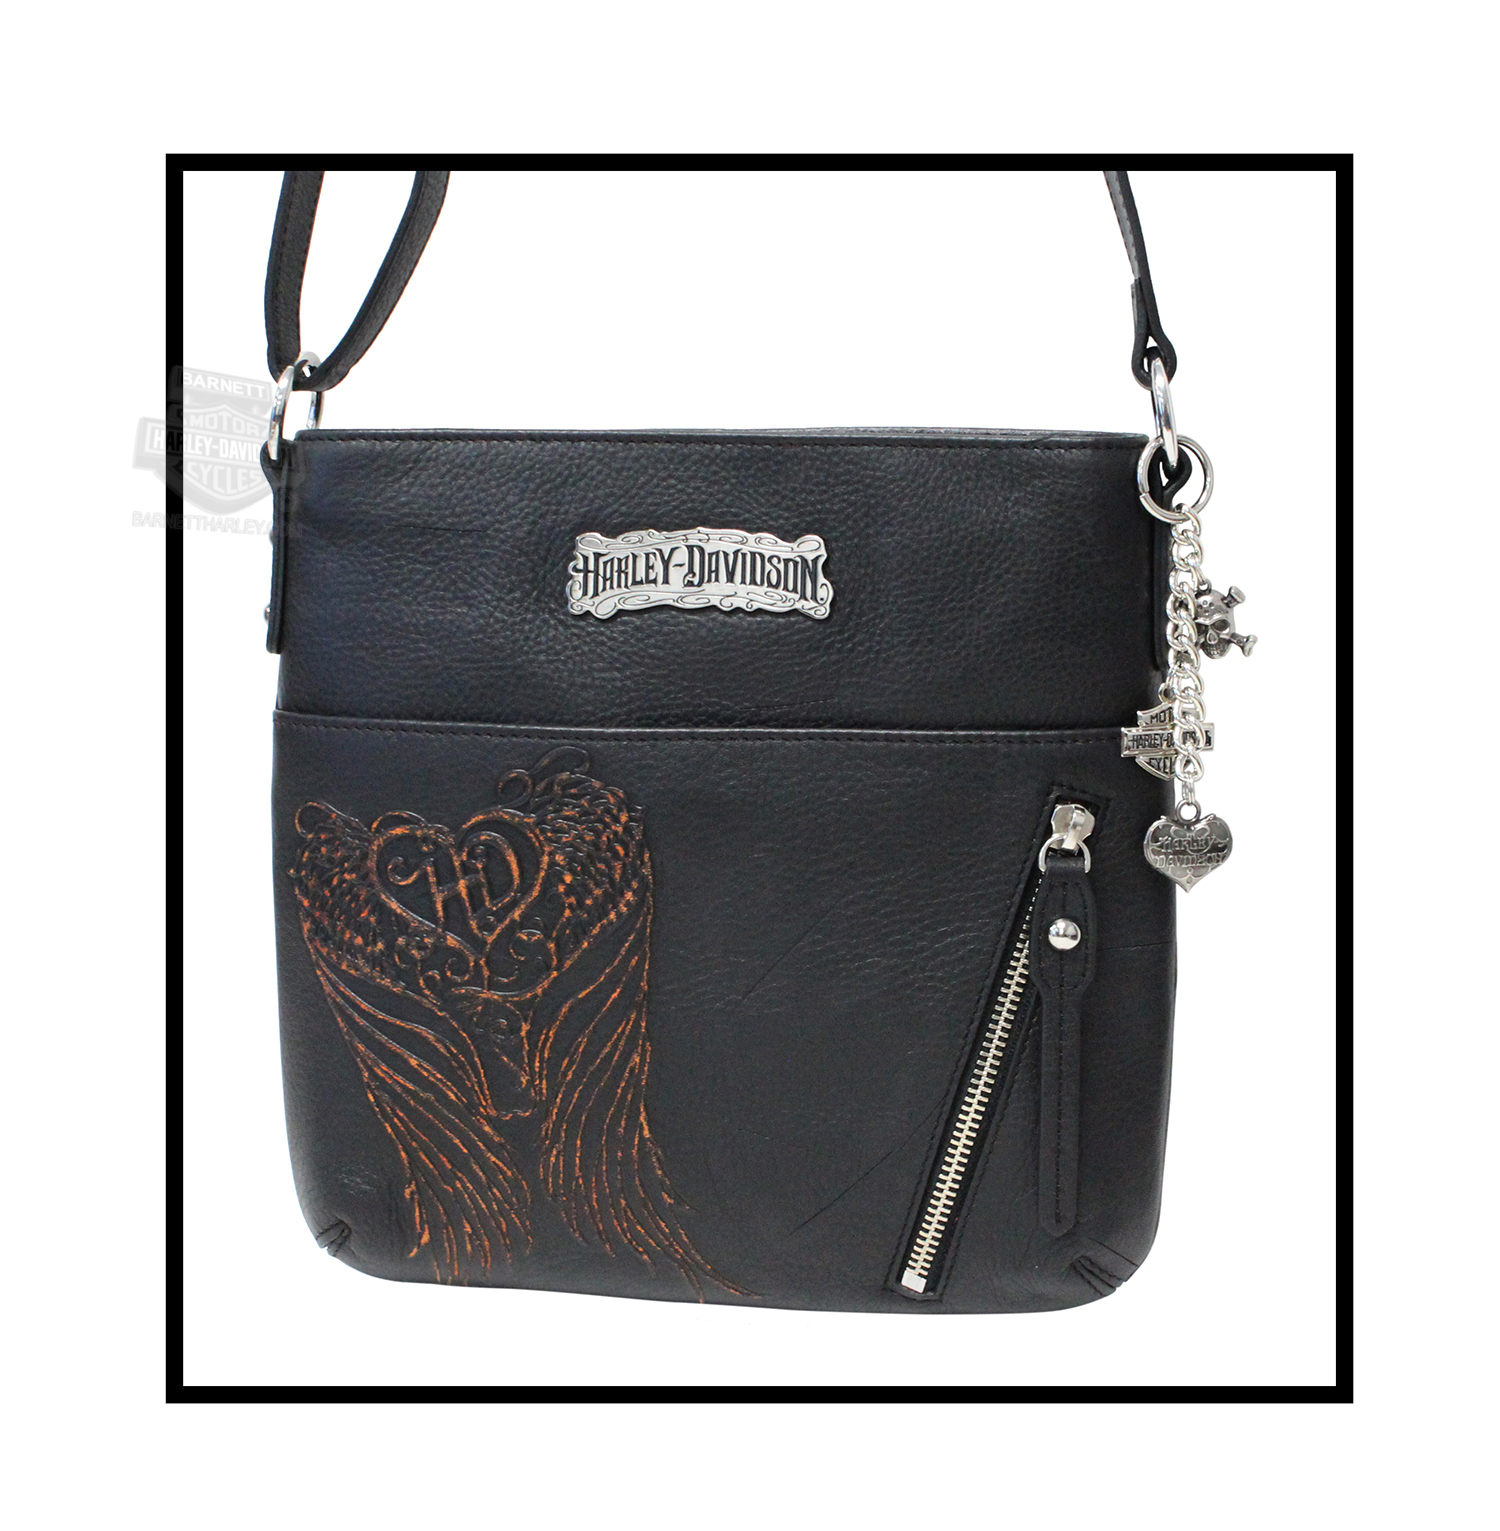 pk9246l-bk - harley-davidson® womens punk hd wings crossbody black